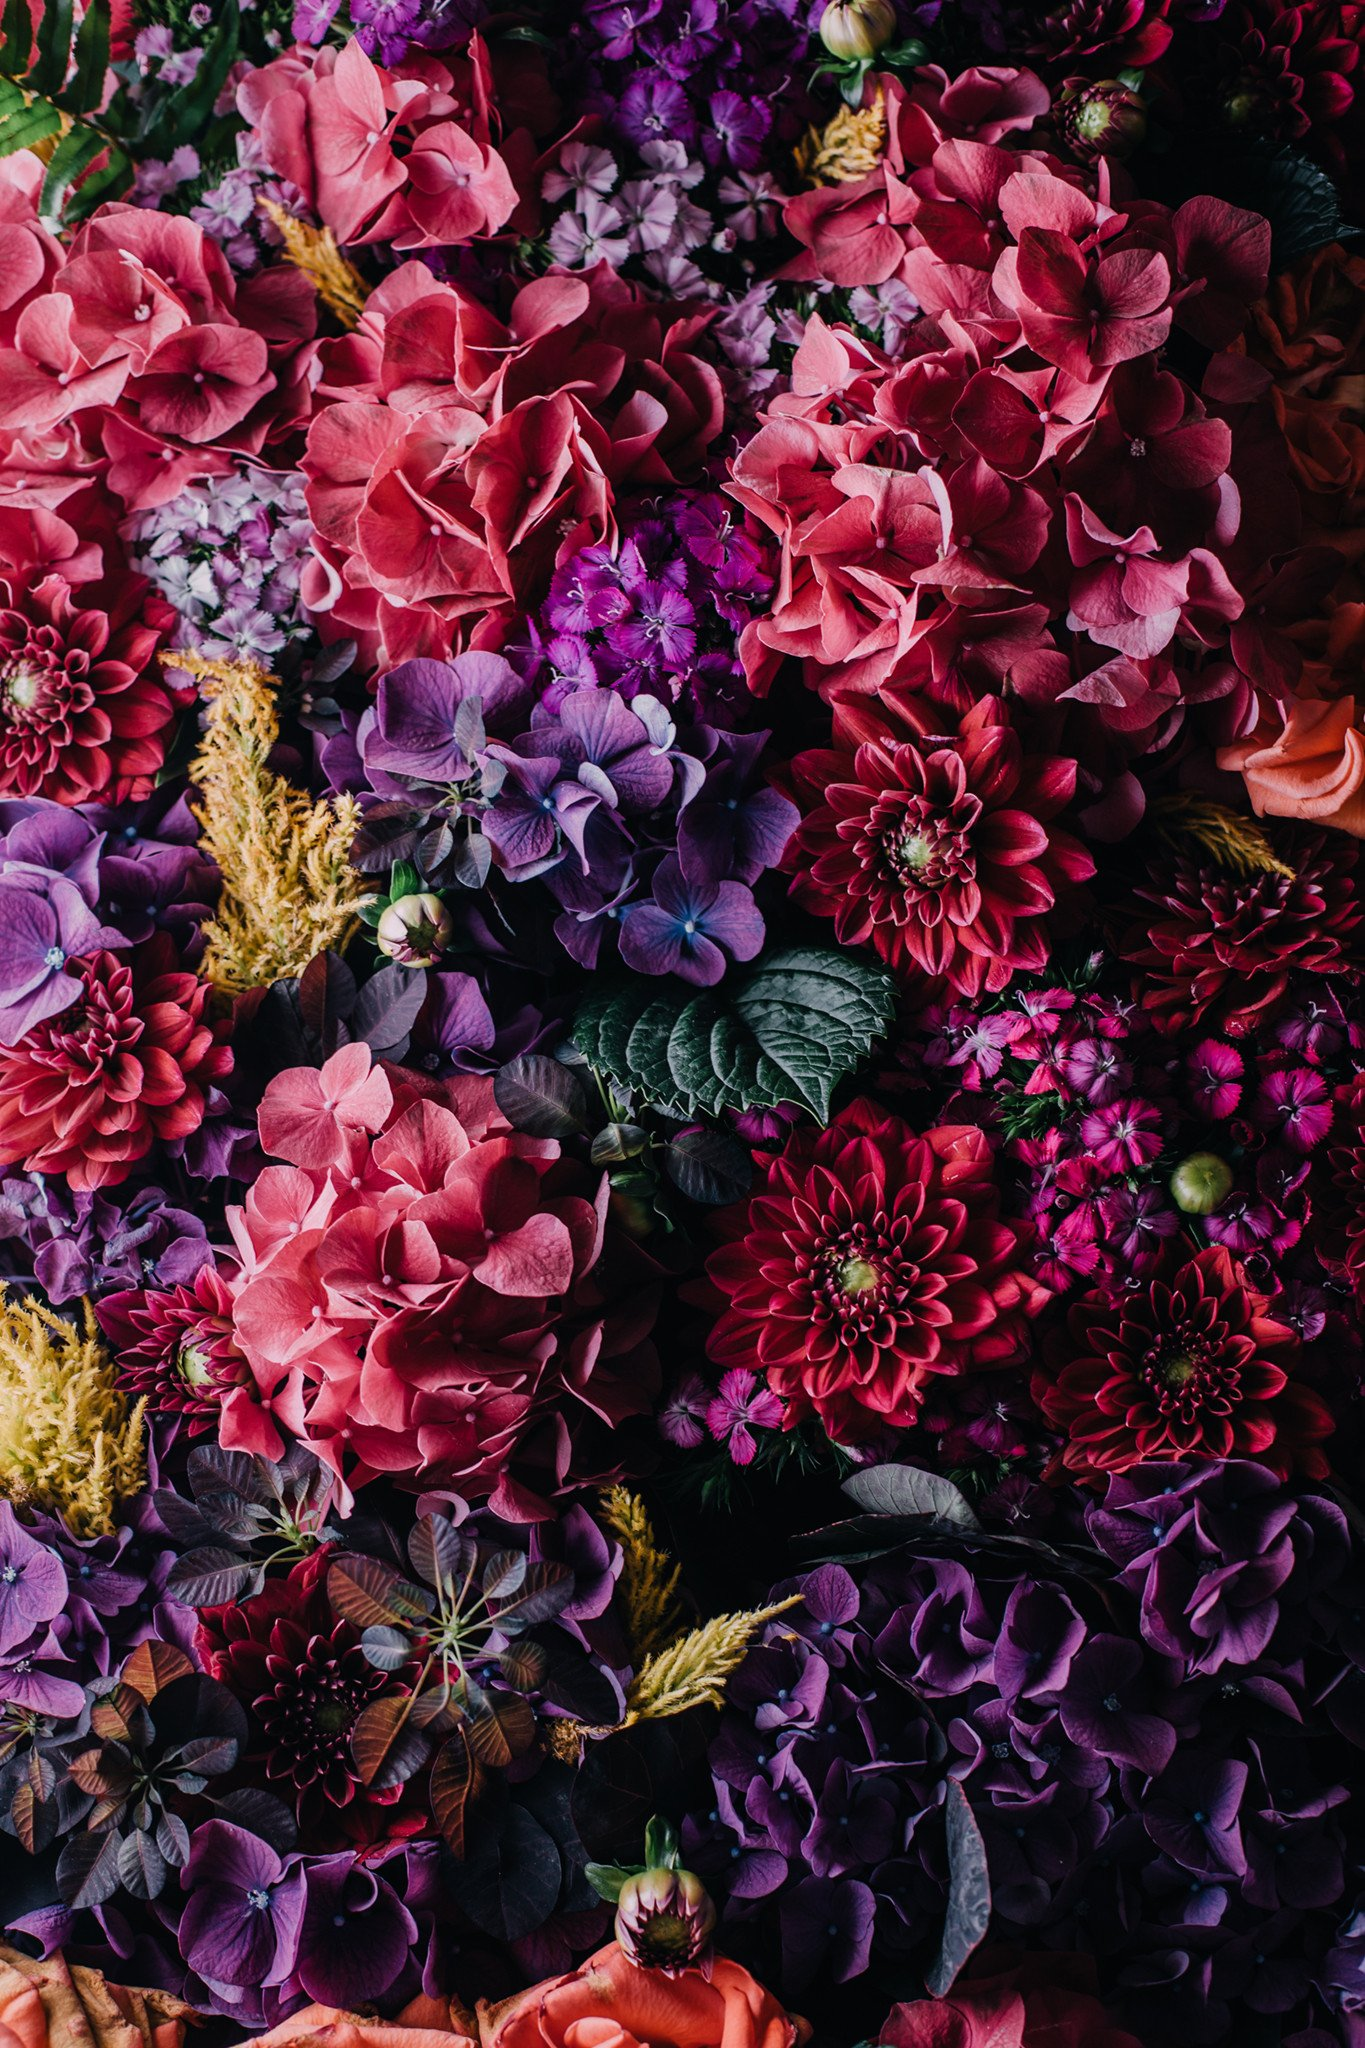 A large bouquet of red, pink, and purple flowers - Large unoptimised at original size